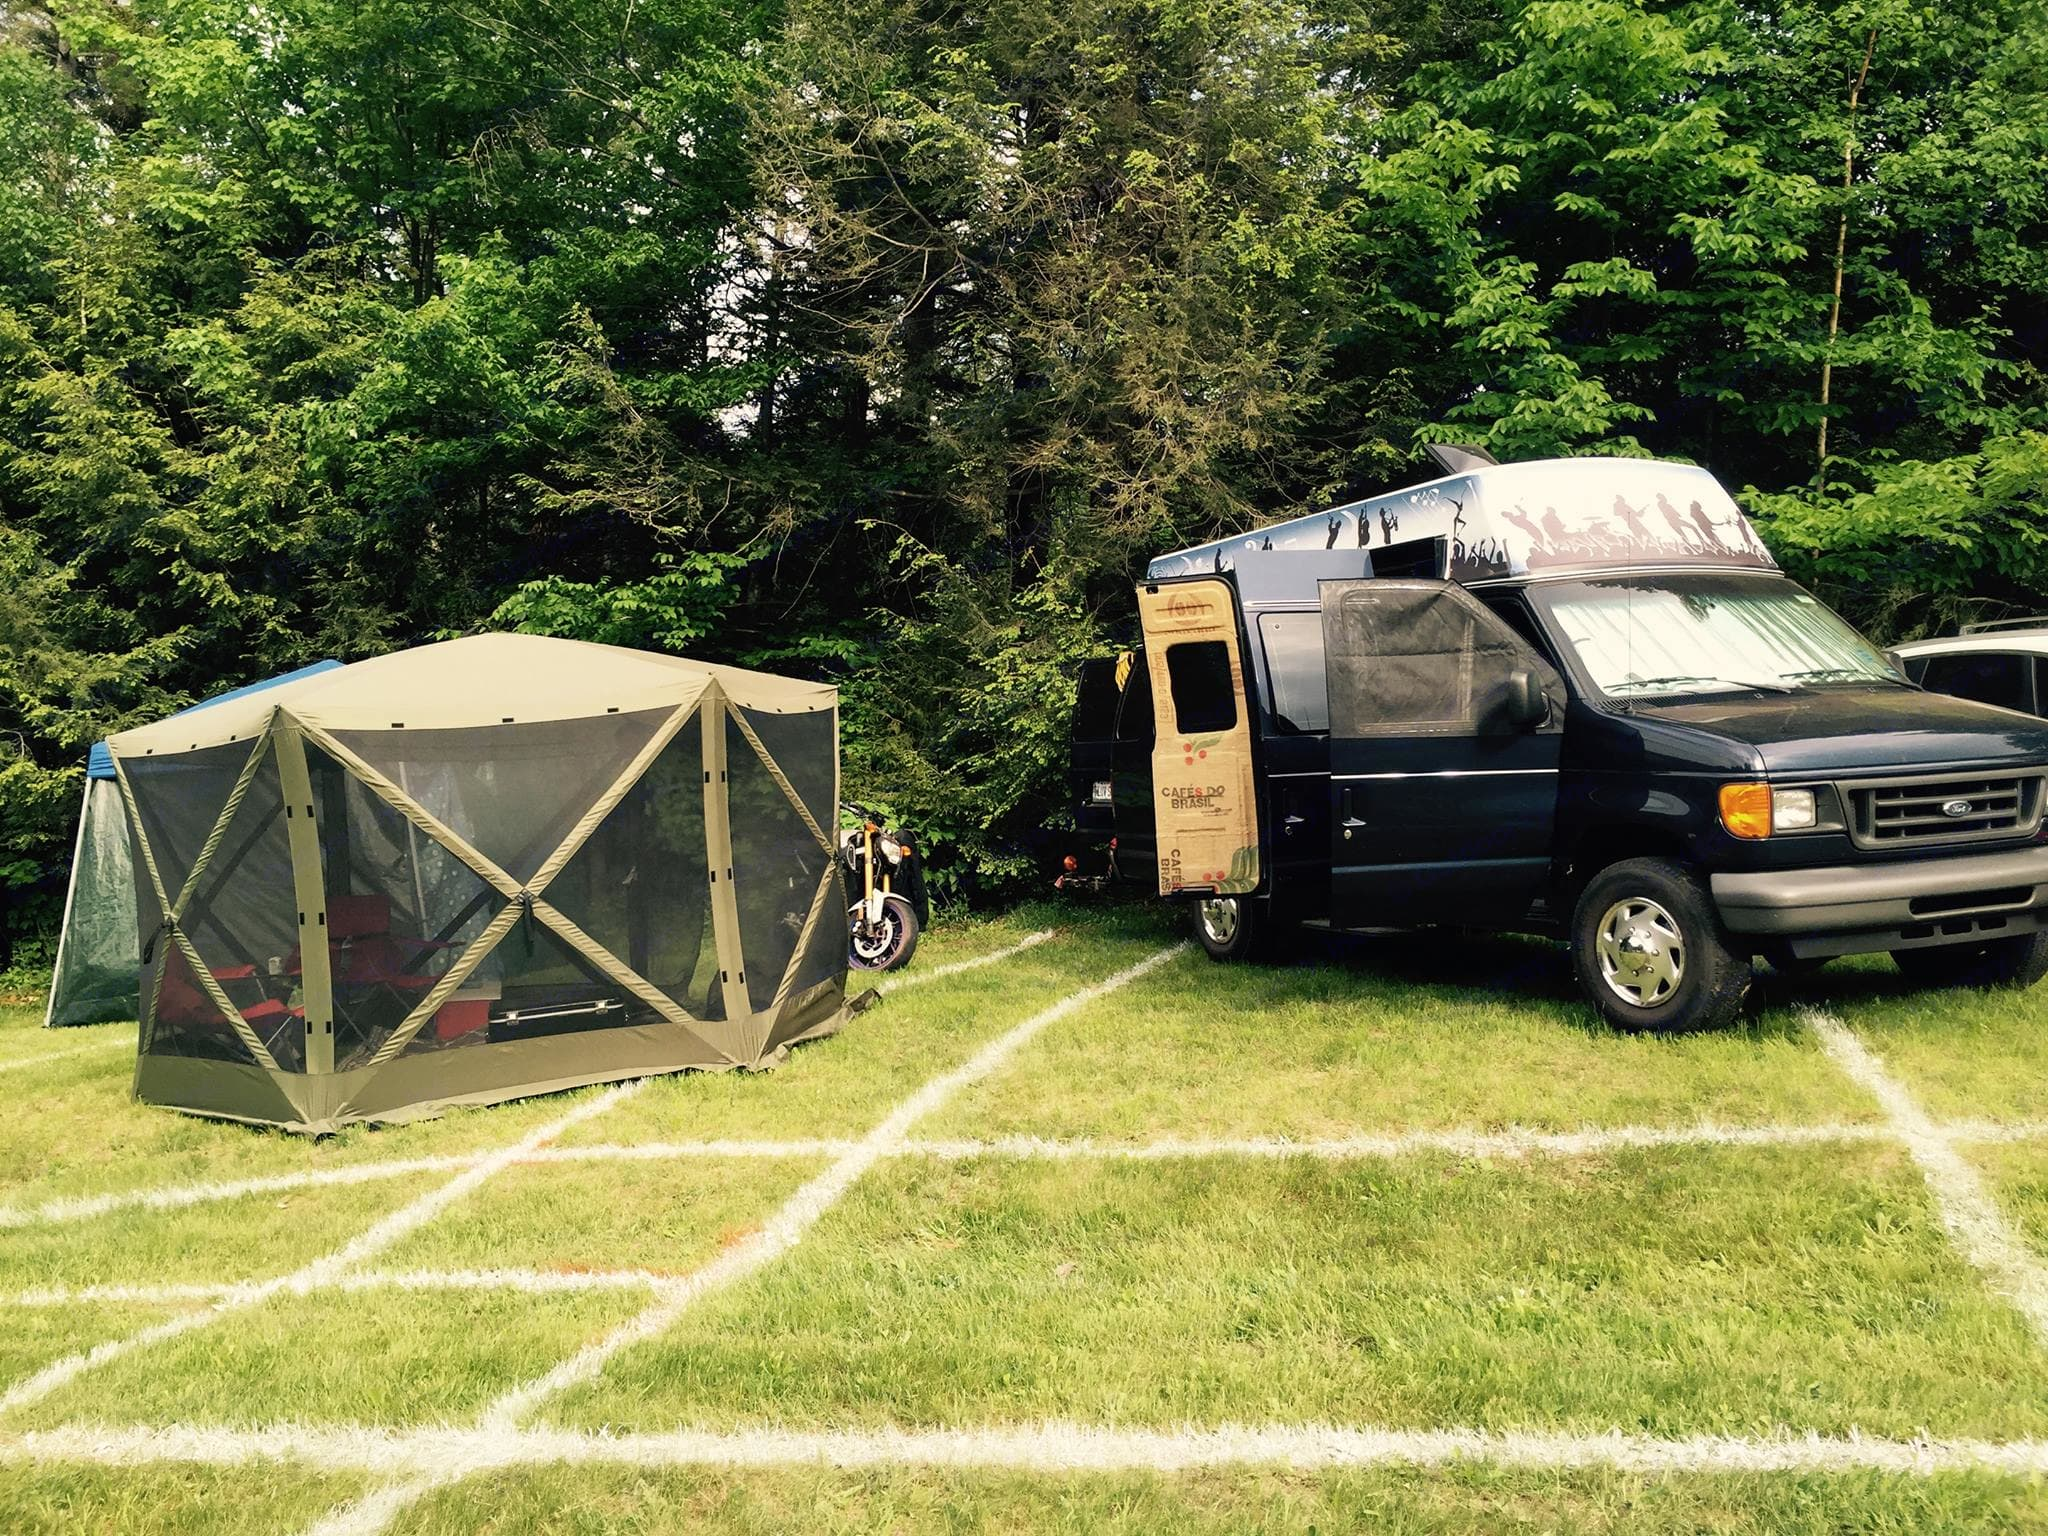 This is at our annual trip to the Mountain Jam Festival in upstate NY. Ford Econolline 250s 2006